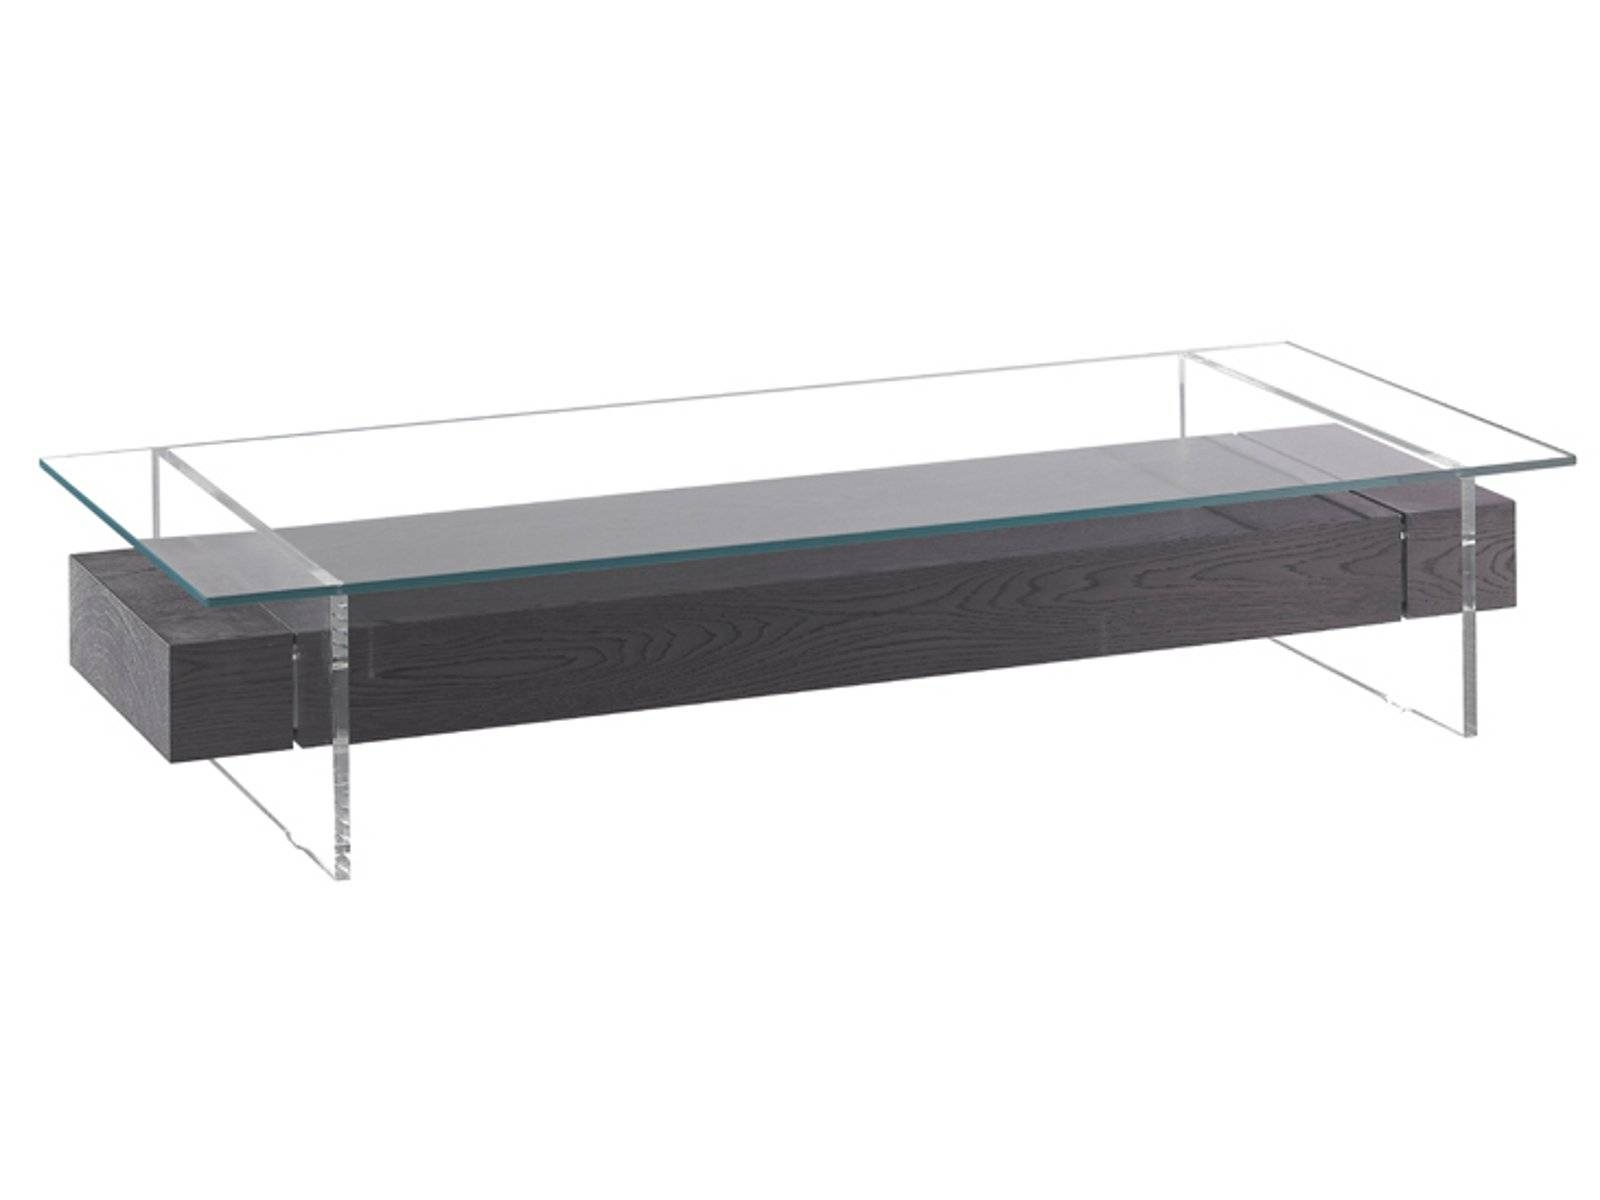 Ôsmos | Coffee Tablela Maison Turrini Design Erwan Peron with regard to Low Rectangular Coffee Tables (Image 26 of 30)